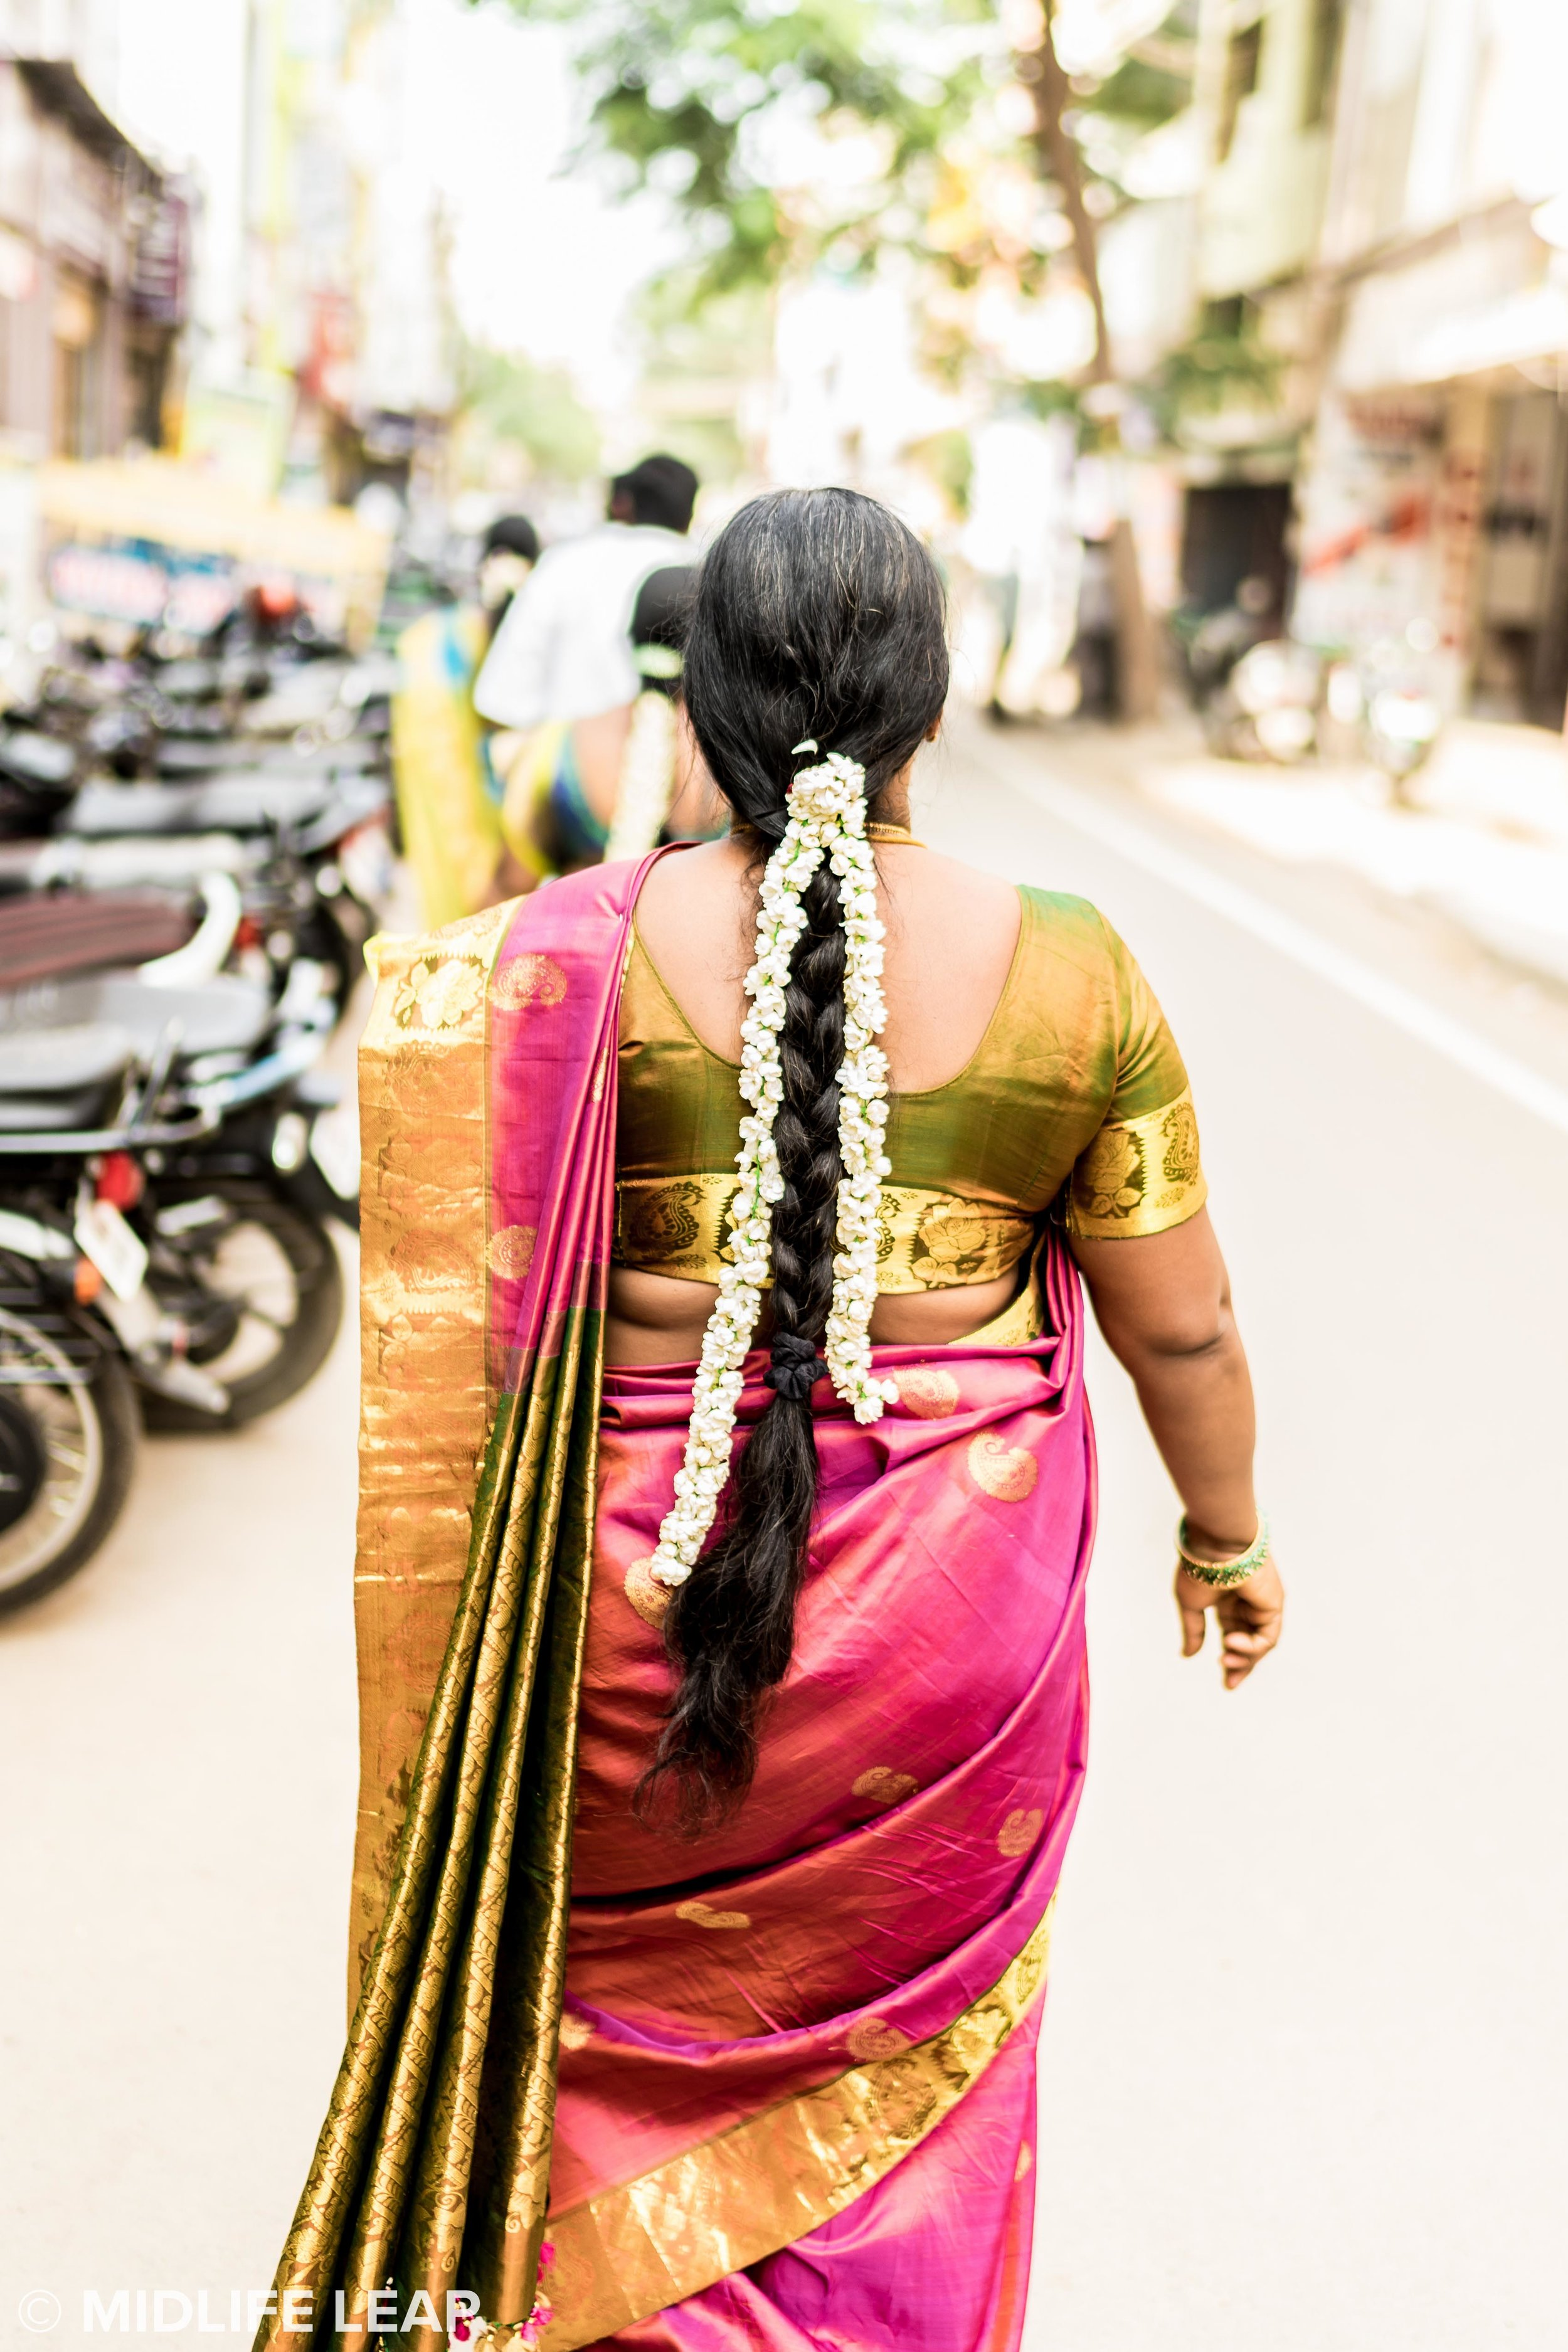 women-of-chennai-flowers-in-hair.jpg